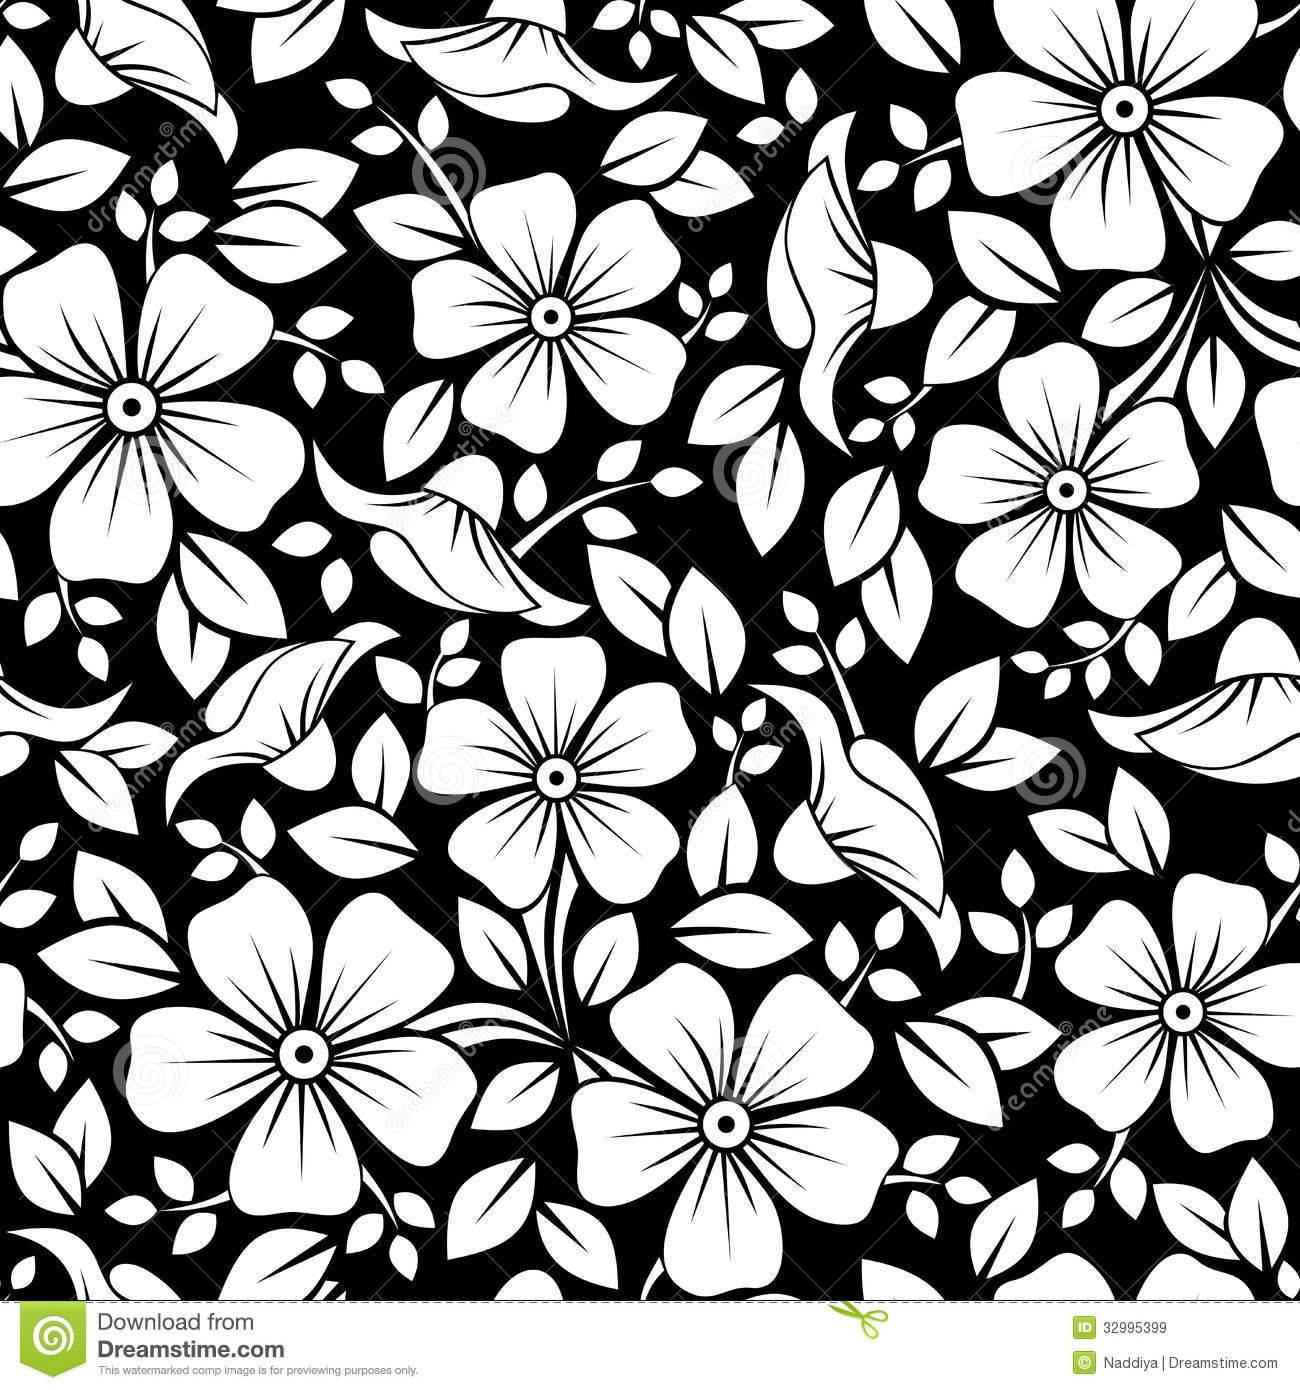 Simple Black And White Flower Patterns | Joy Studio Design ...